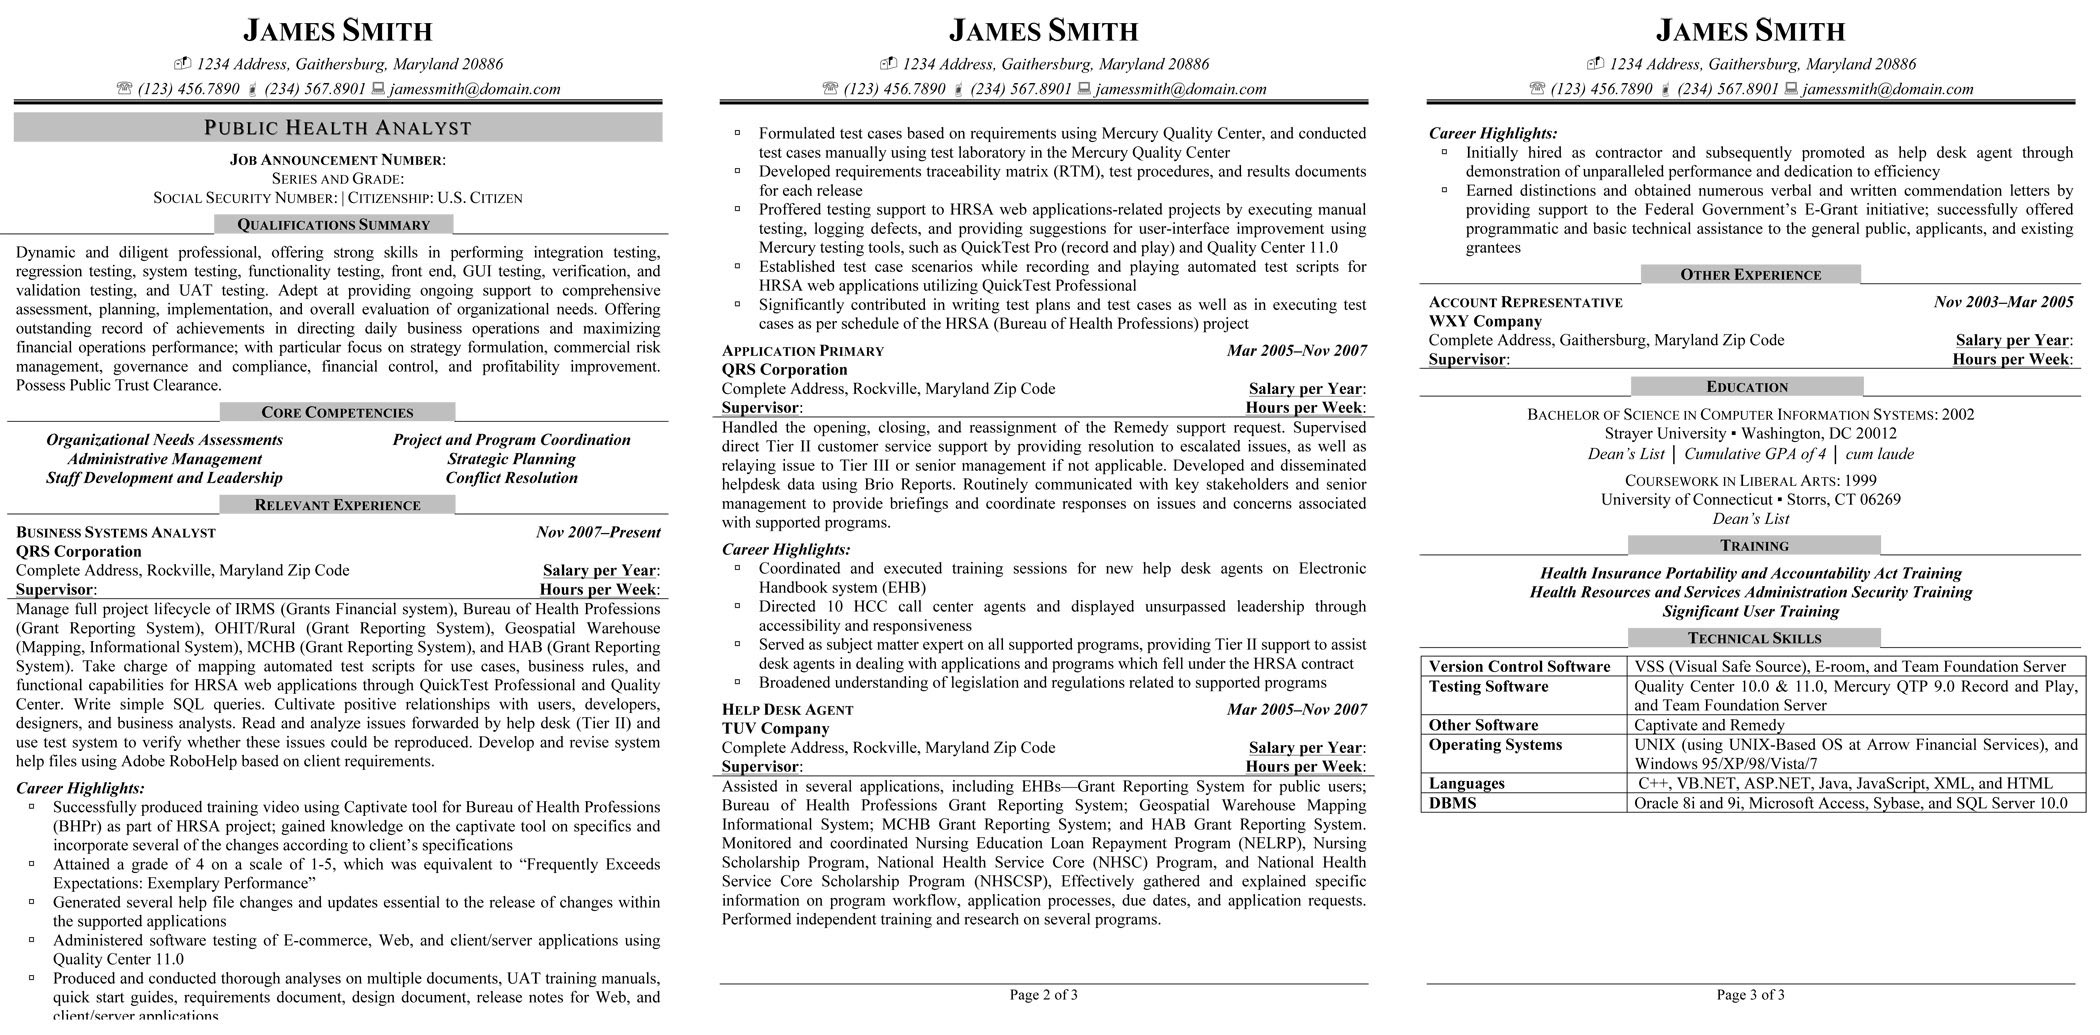 public health analyst resume federal resume sample